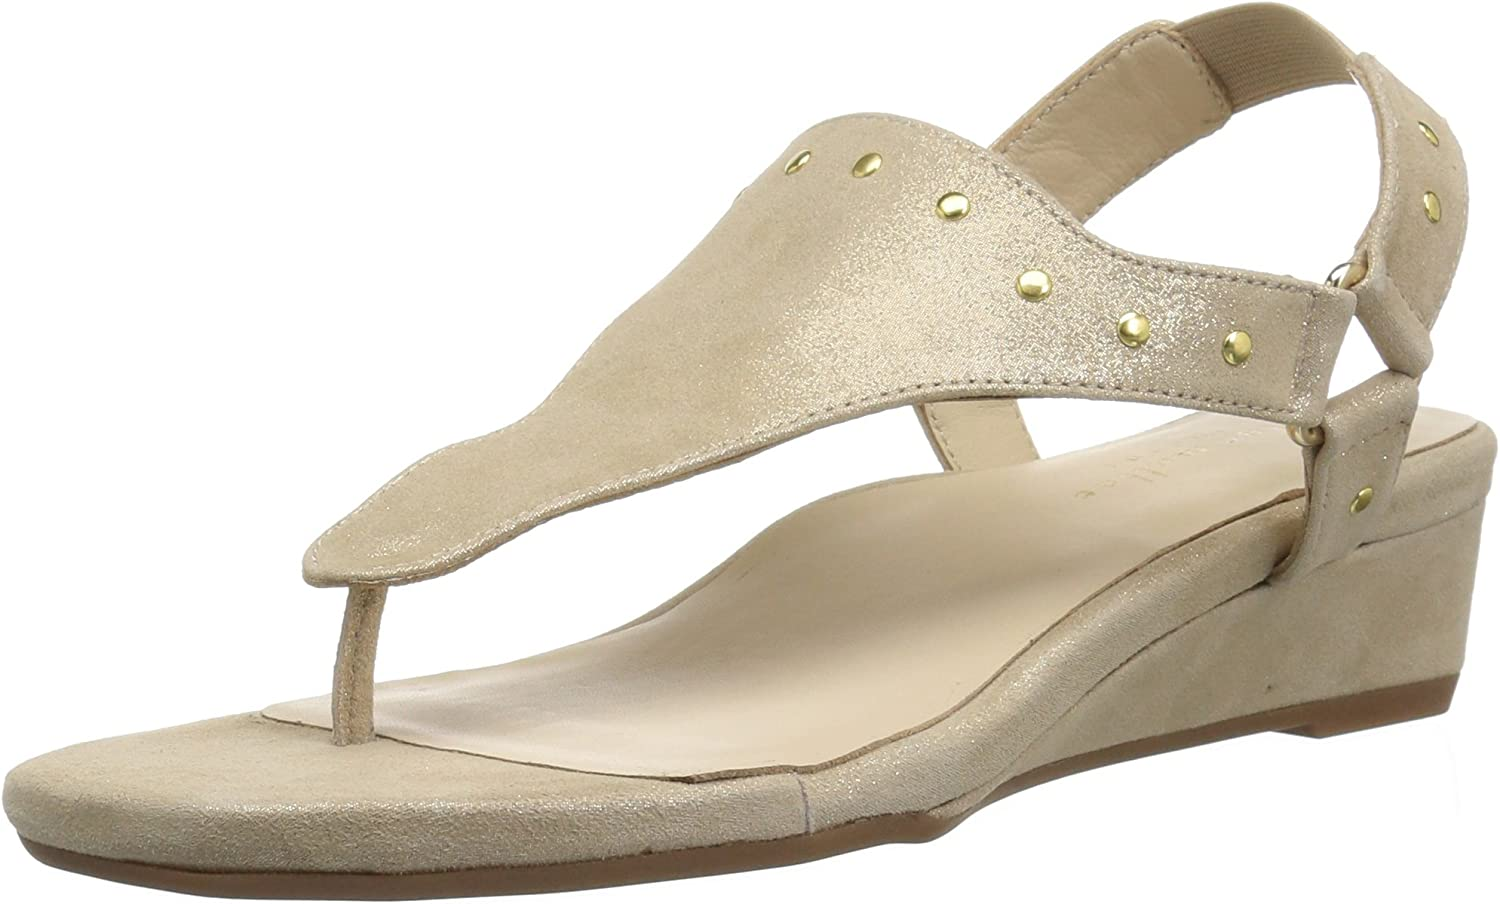 Bettye Muller Womens Kent Wedge Sandal